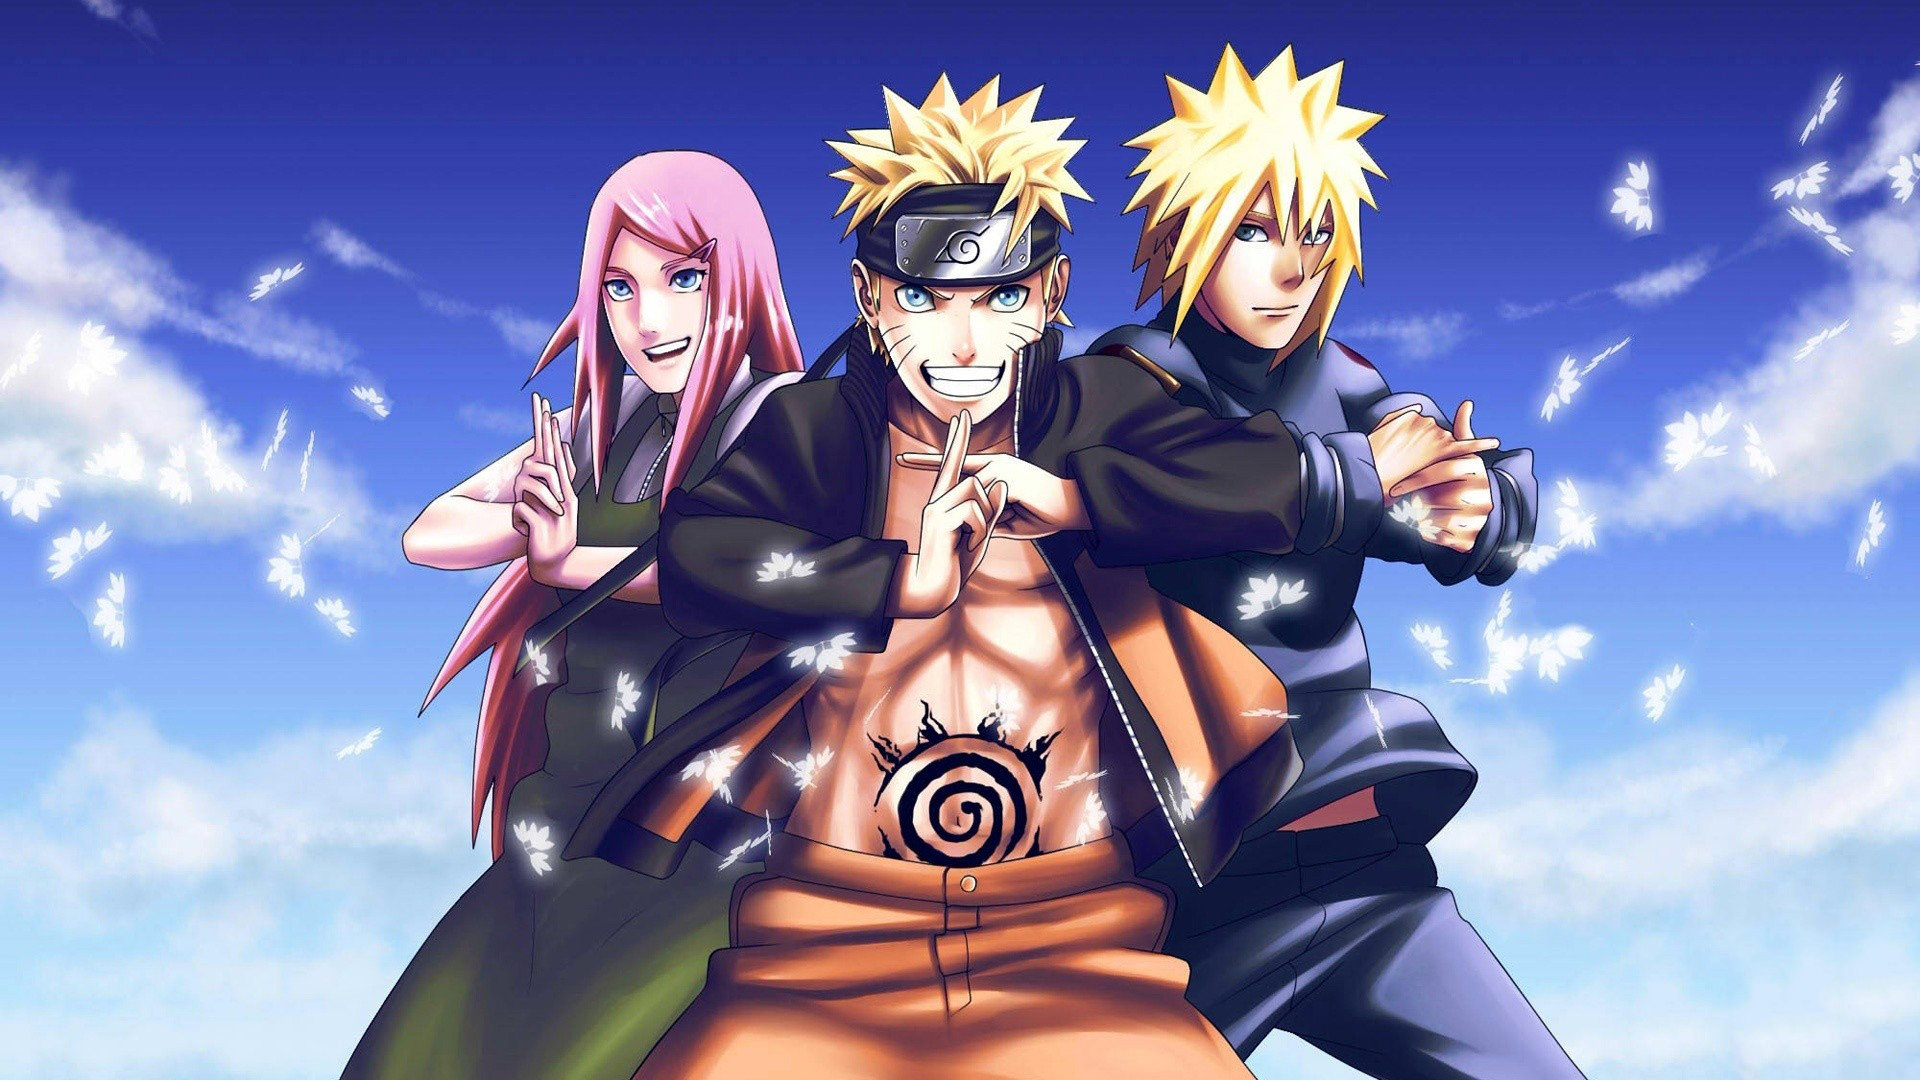 Download full hd Naruto PC wallpaper ID:396458 for free